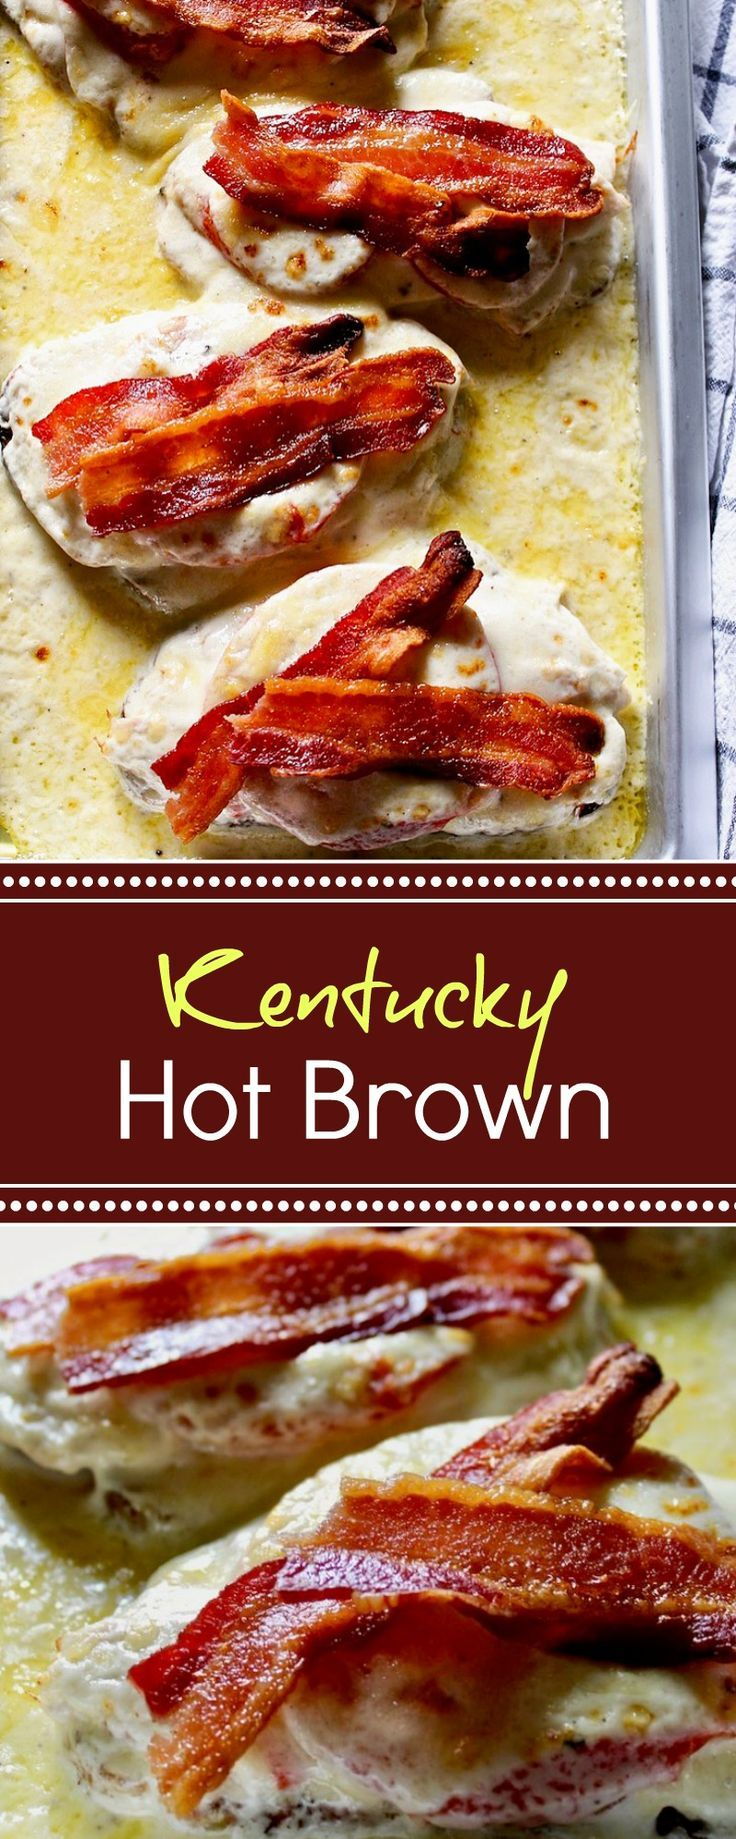 Kentucky Hot Brown, classic broiled turkey, tomato, bacon sandwich covered in cheese sauce.